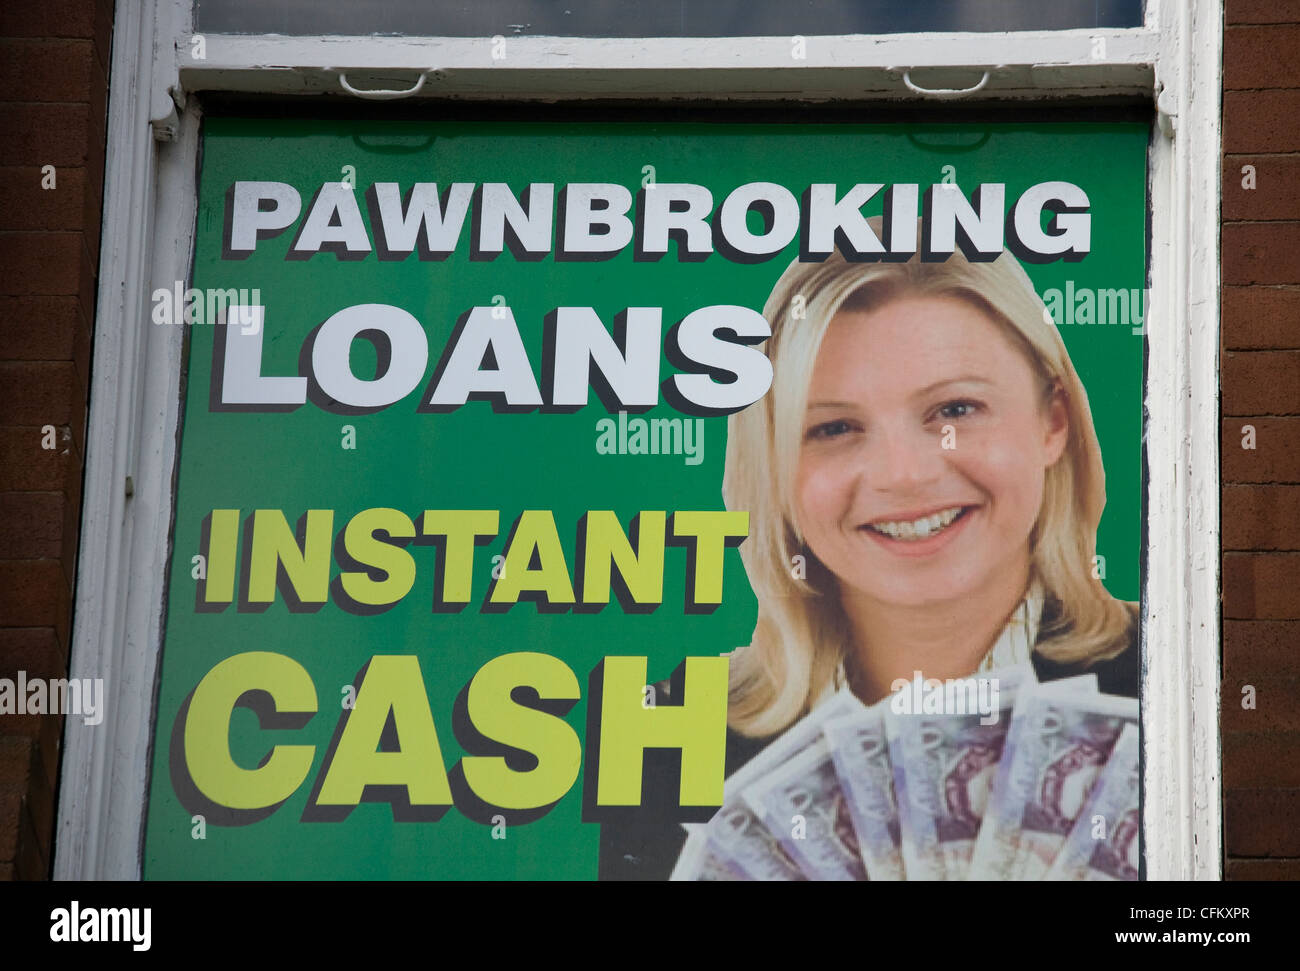 Best payday loans for benefits image 8